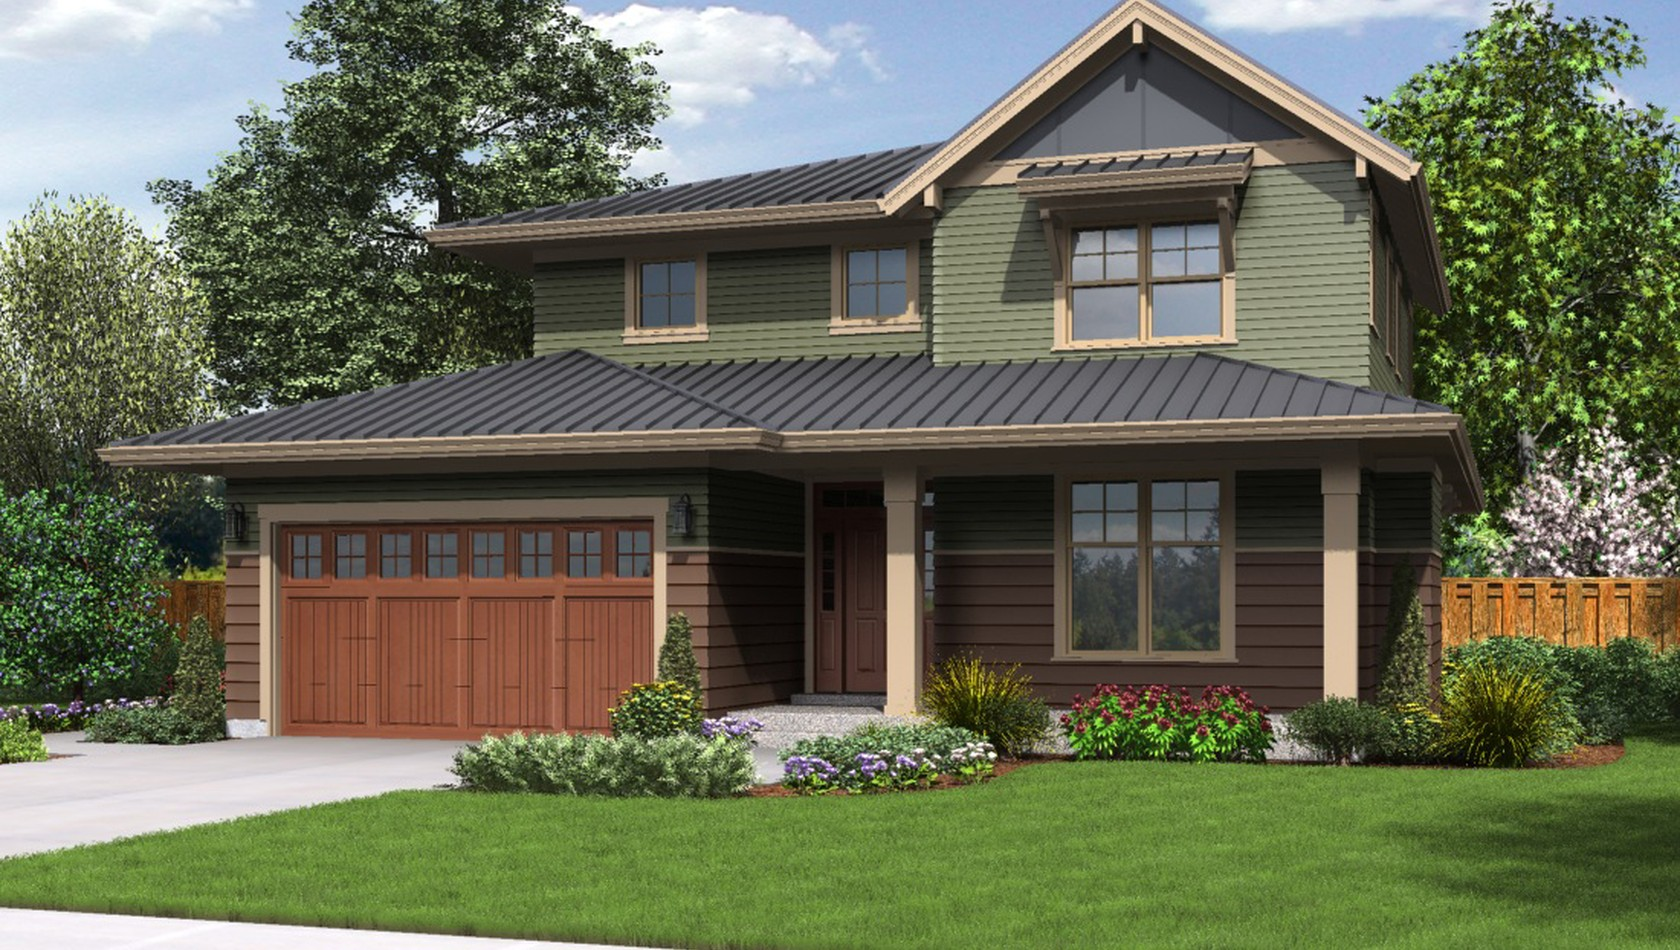 Main image for house plan 22193ES: The Forest Park